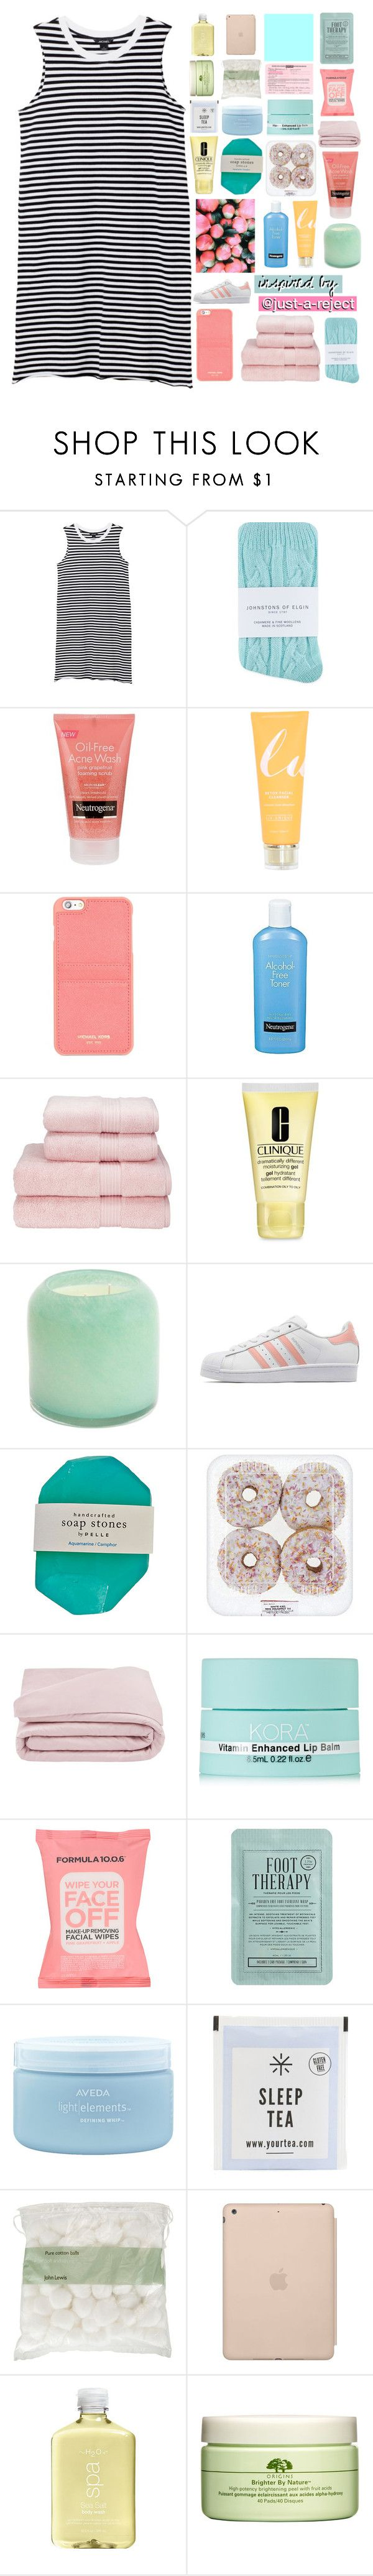 """""""DAMN YOU LOOK SO GOOD WITH YOUR CLOTHES ON"""" by nothing-like-outerspace ❤ liked on Polyvore featuring Monki, Johnstons, Neutrogena, Michael Kors, Christy, Clinique, Alassis, adidas Originals, Frette and KORA Organics by Miranda Kerr"""